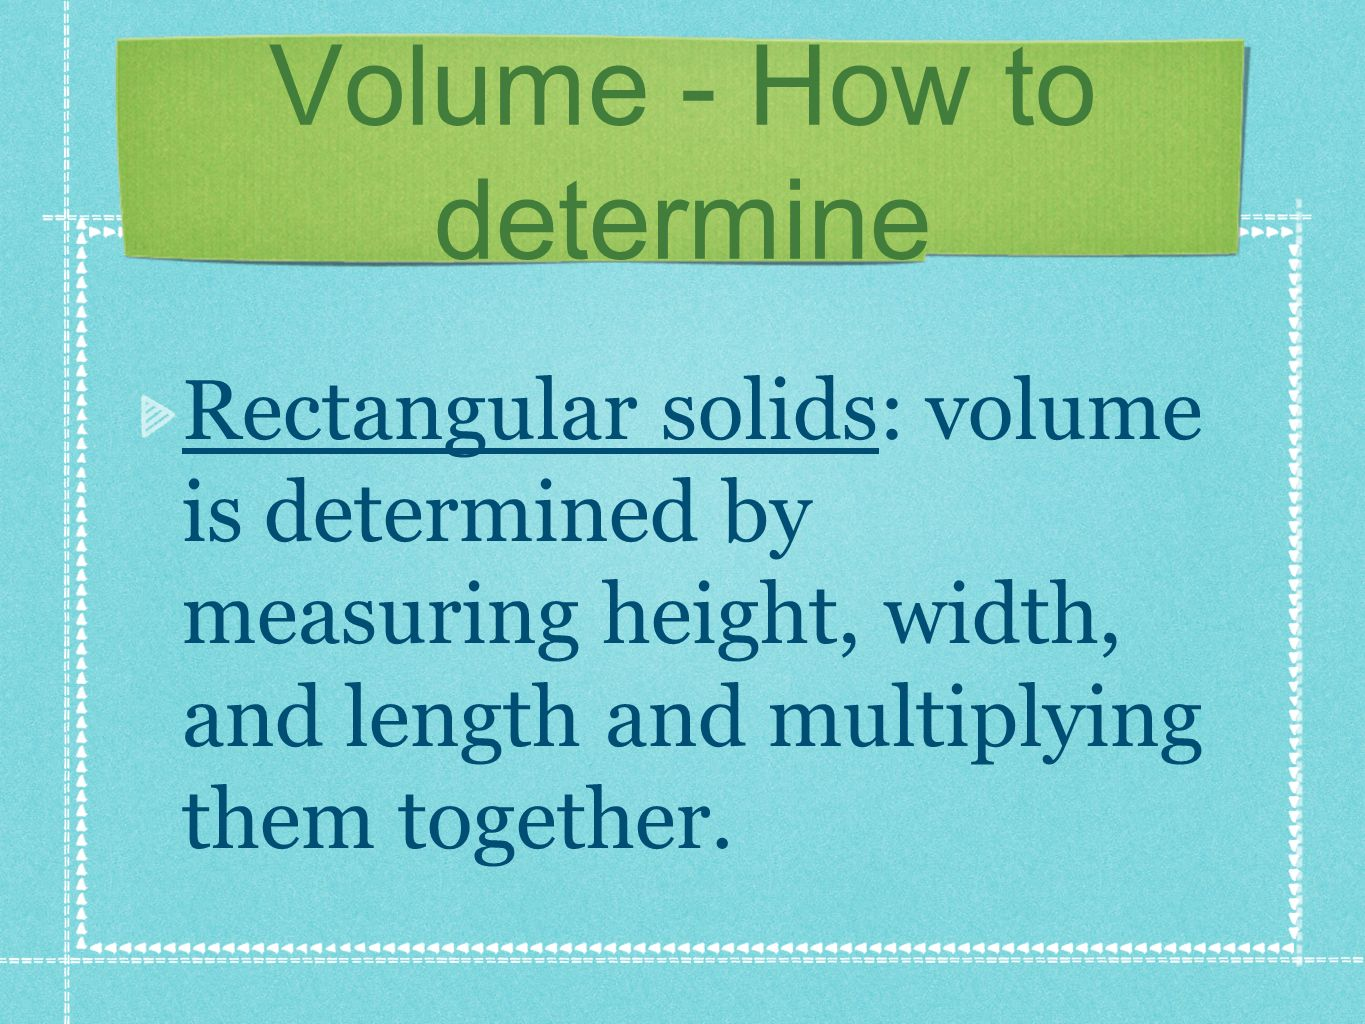 Volume - How to determine Rectangular solids: volume is determined by measuring height, width, and length and multiplying them together.